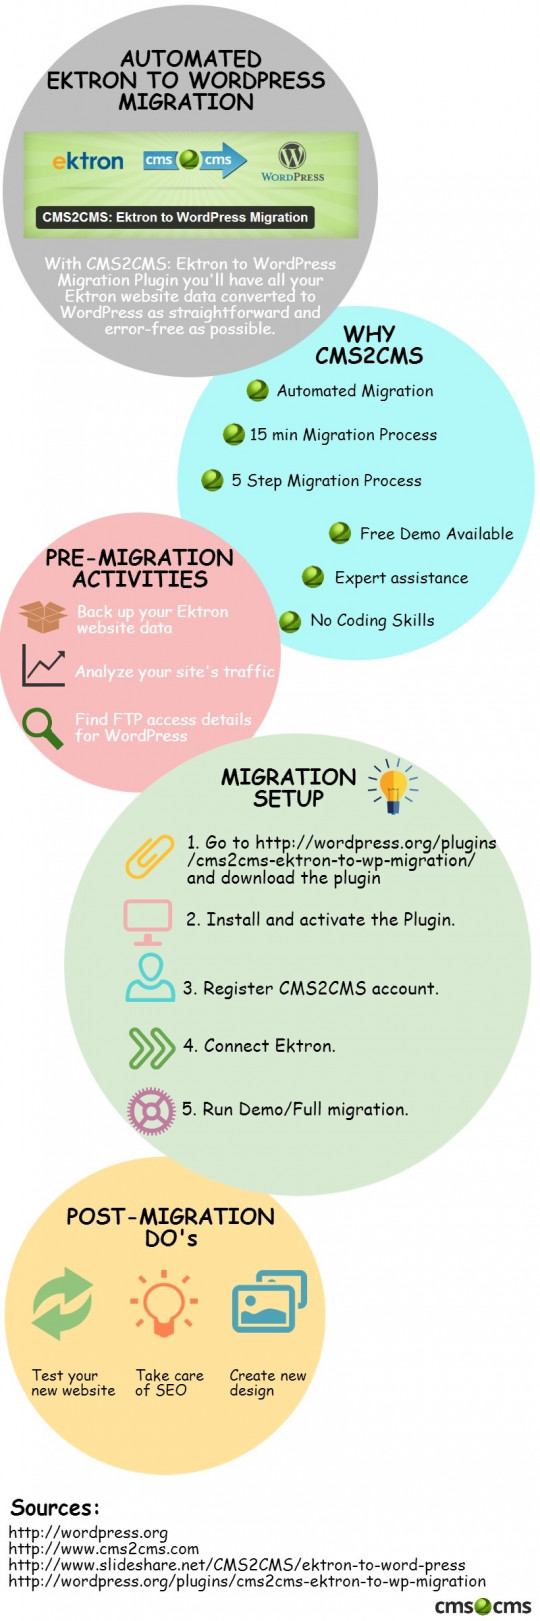 ektron-to-wordpress-step-by-step-infographic